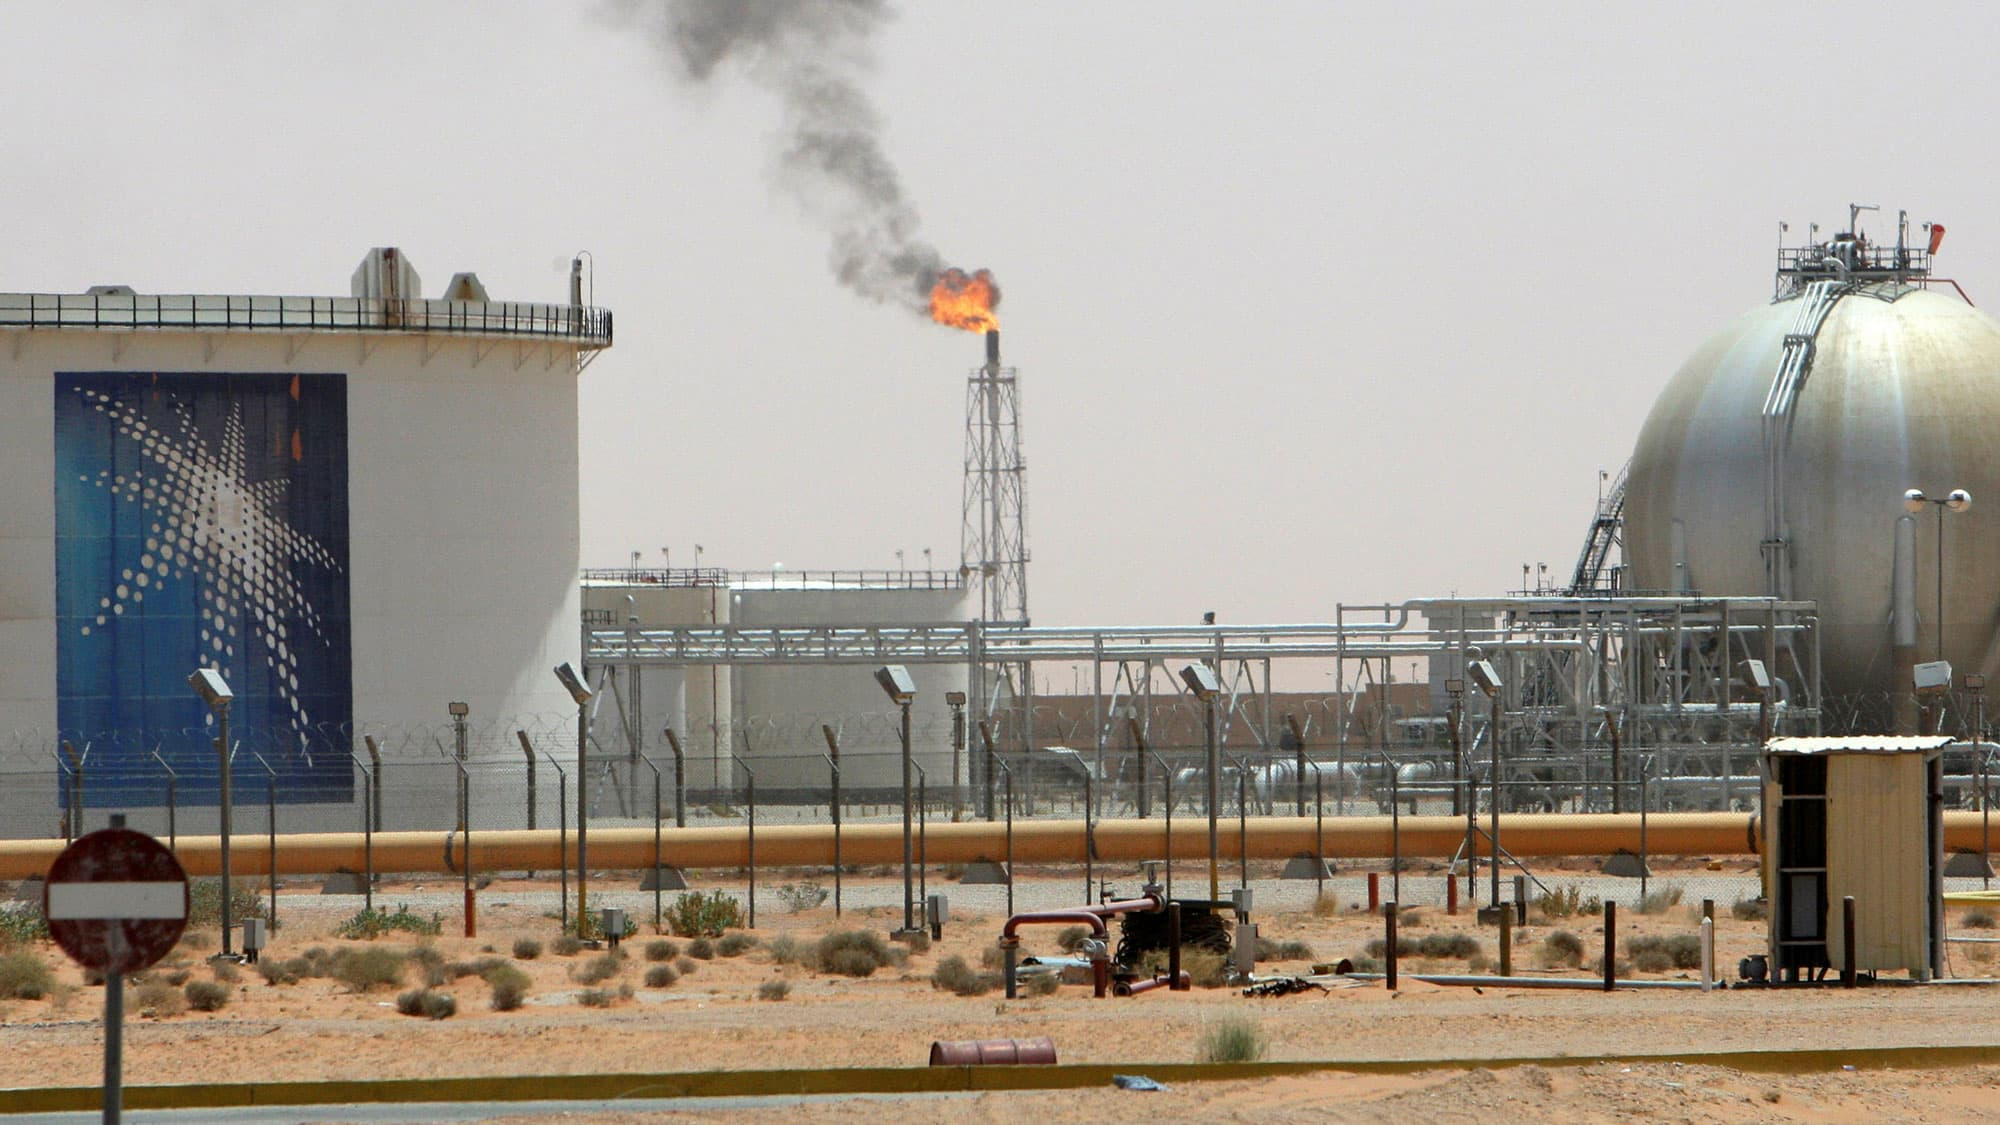 Oil traders eye Saudi Arabia's response in a critical juncture for crude